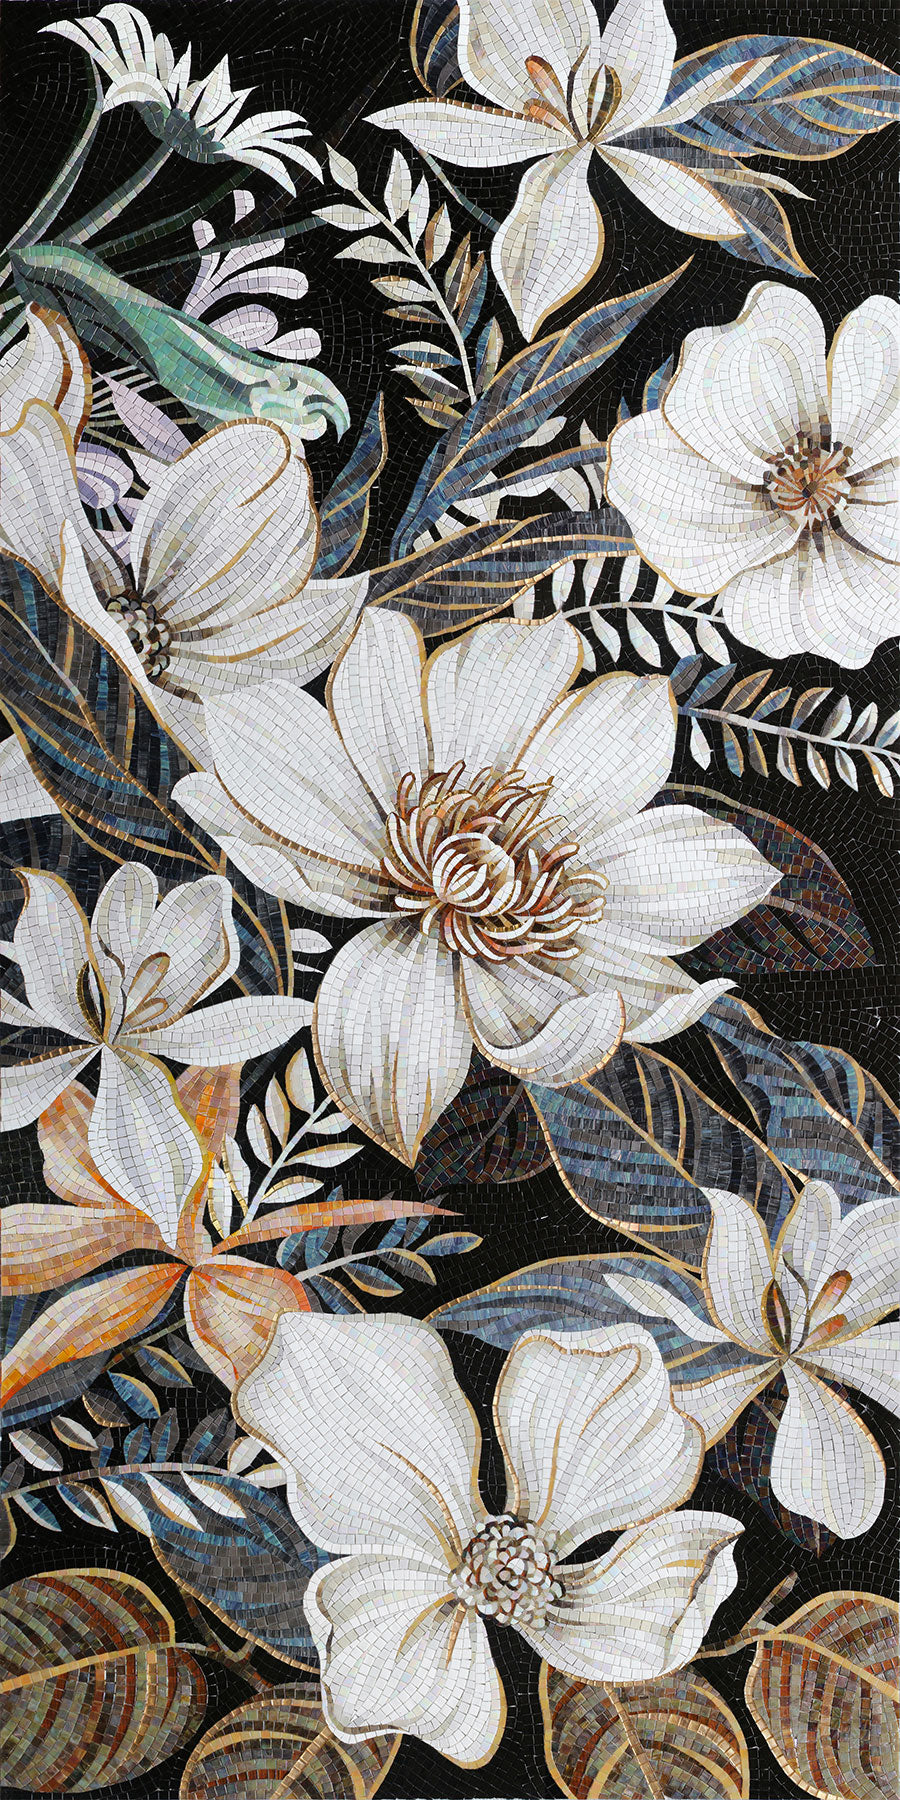 Intricate Glass Tile Mosaic Mural of Flowers to Create a Glamorous Design on your Wall or Floor